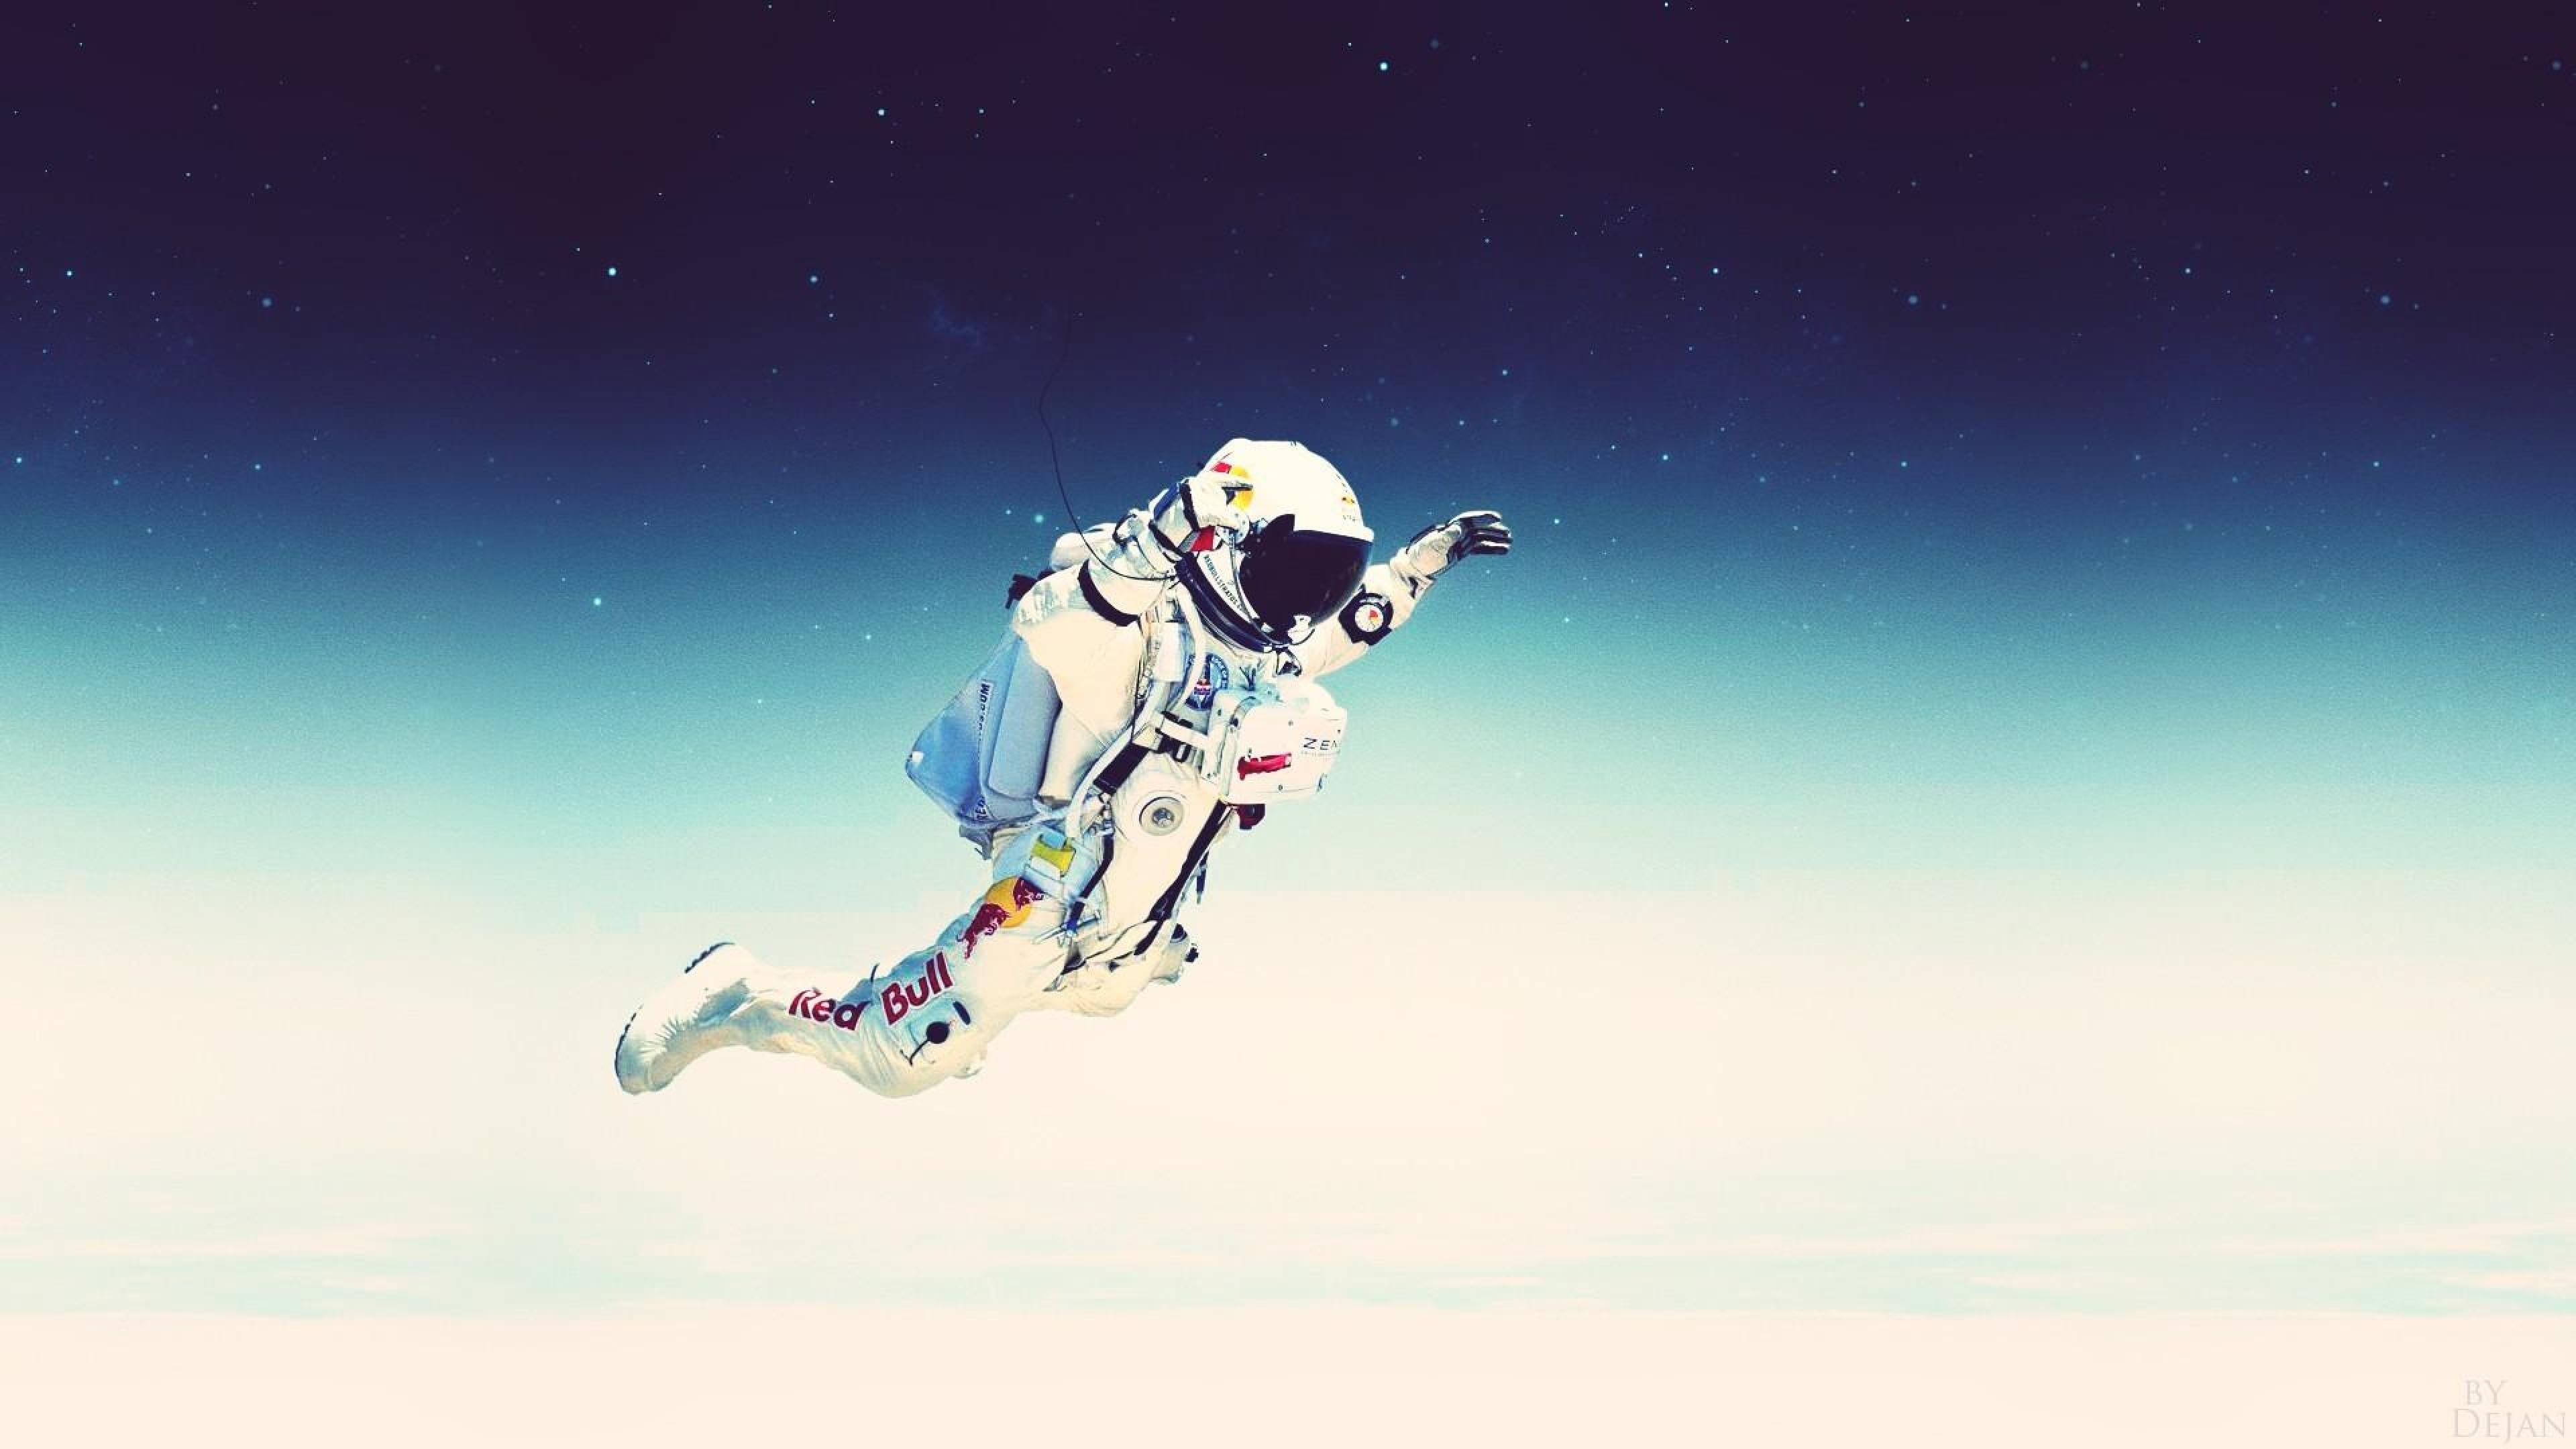 Download Free Astronaut Wallpapers